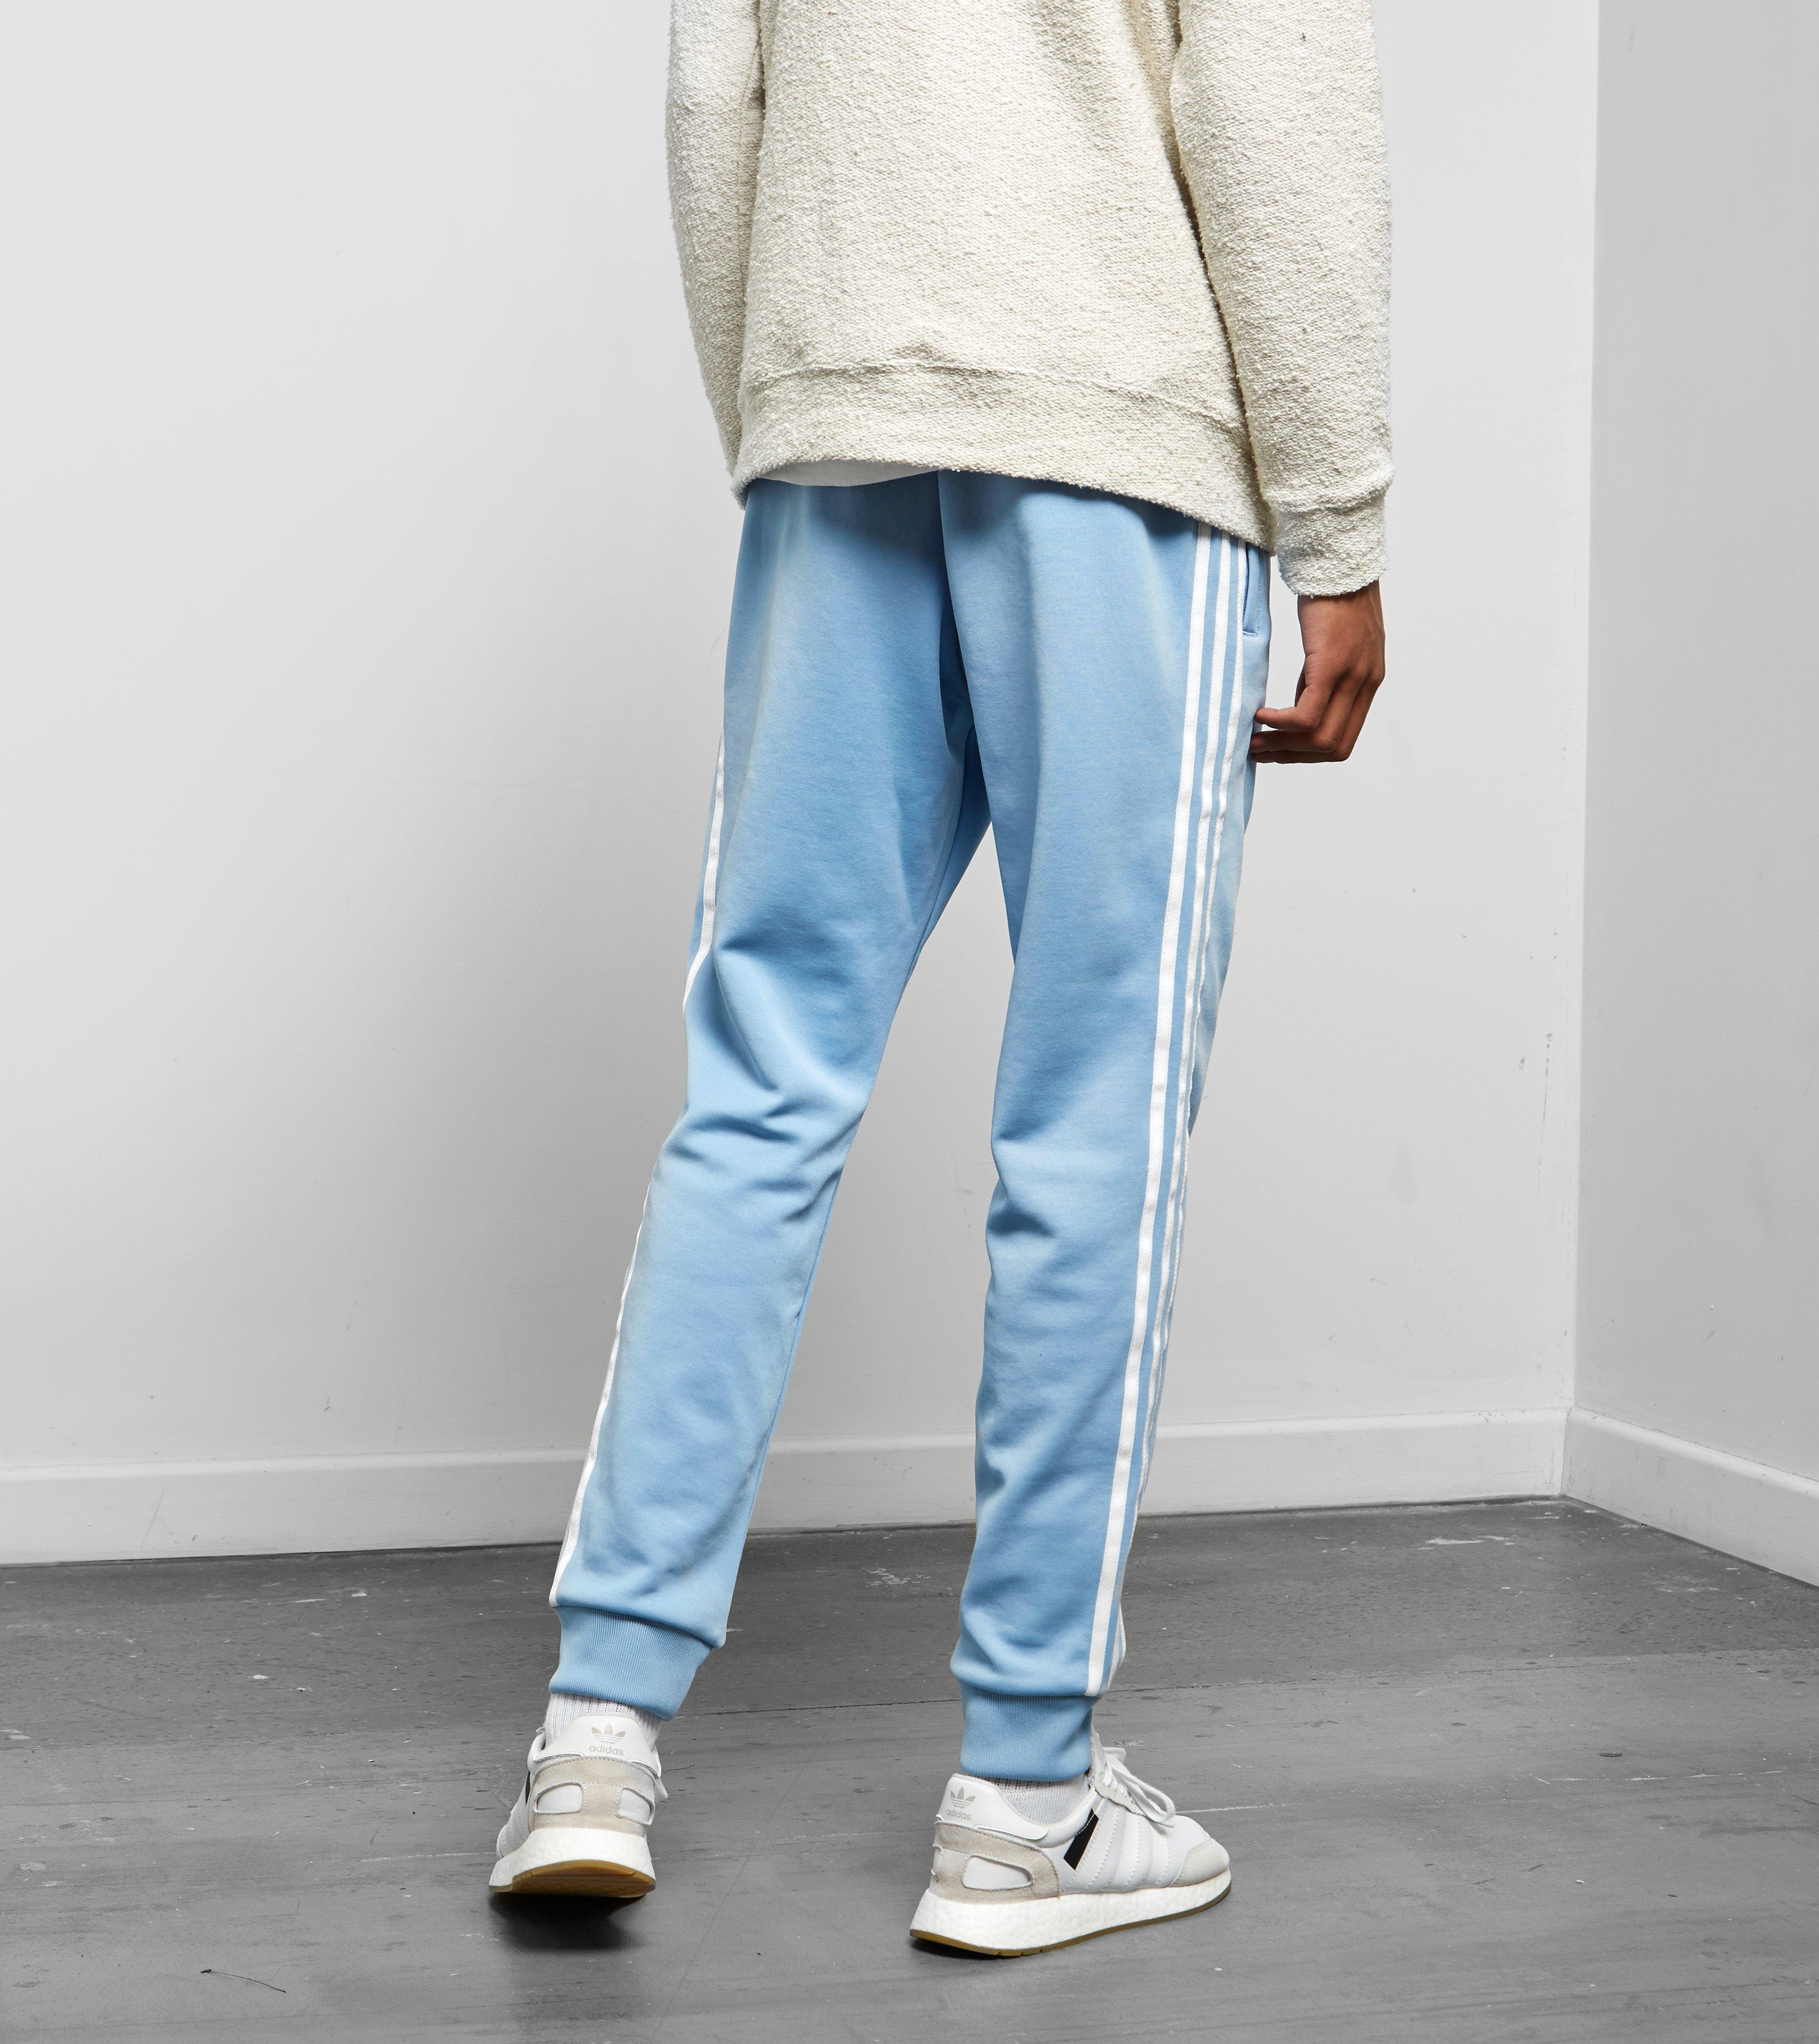 b1a14924595c Lyst - adidas Originals Superstar Track Pants in Blue for Men